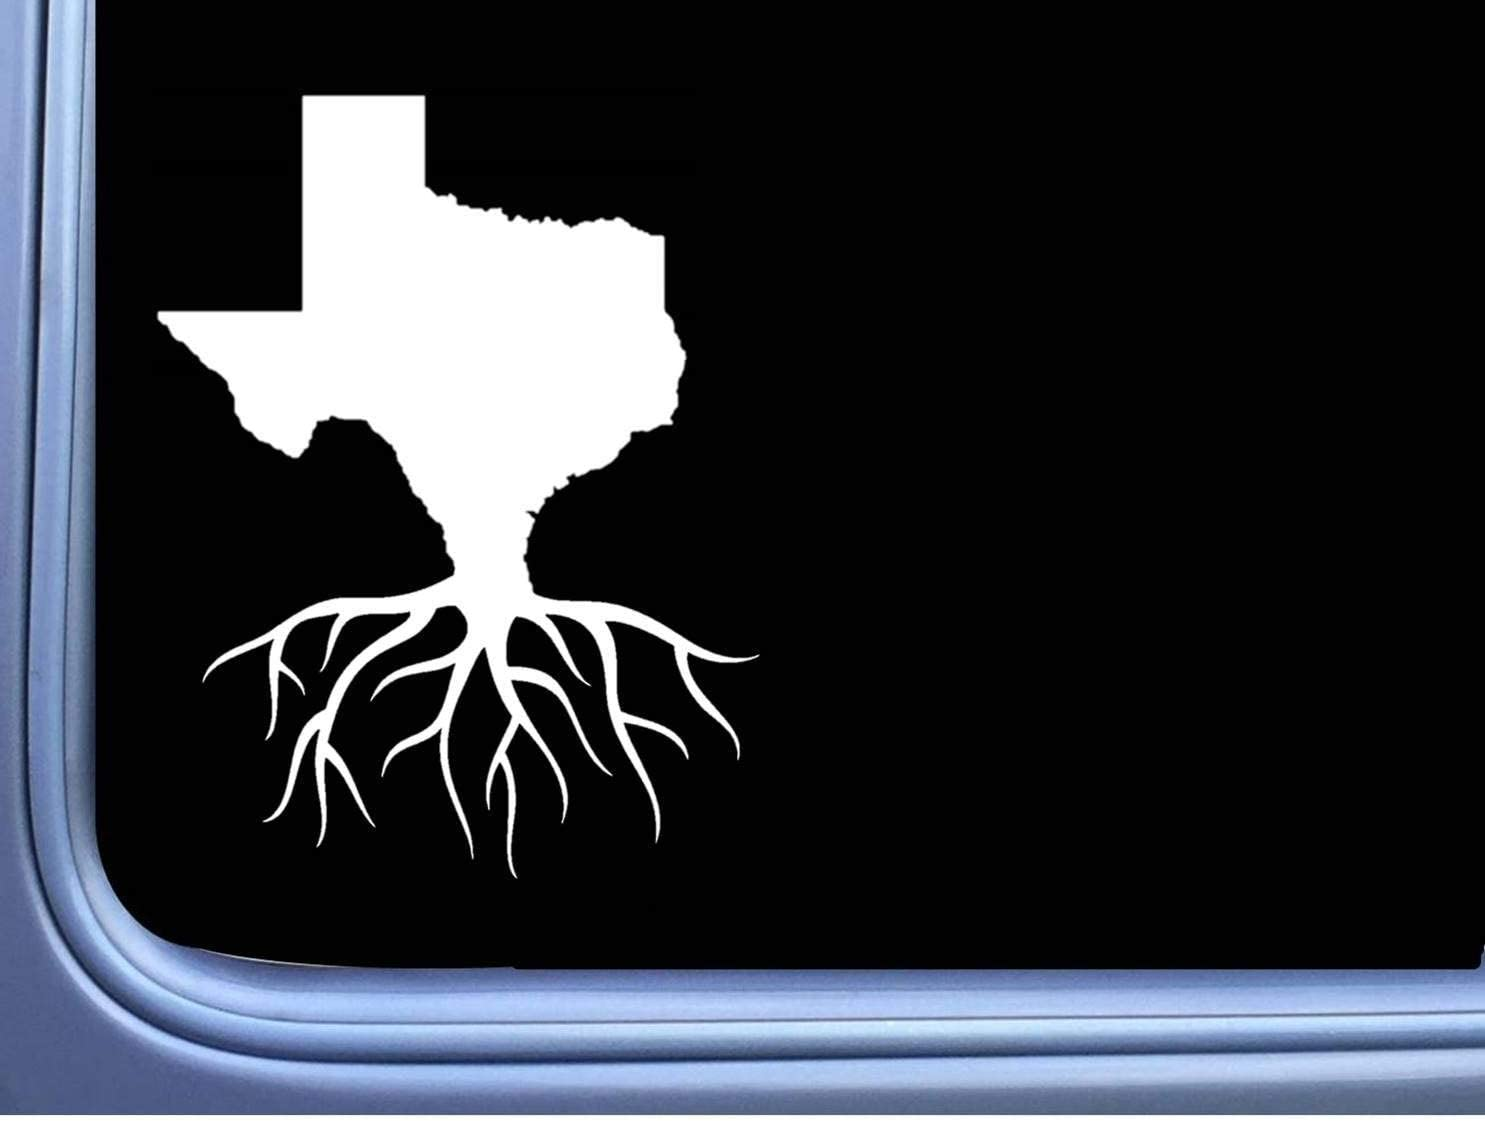 Texas Roots Decal 8 Inches Vinyl Car Sticker Window Decal Stickers Decor We The People Home State White Decal for Car Laptop Trucks Any Flat Surface Custom Best Gift